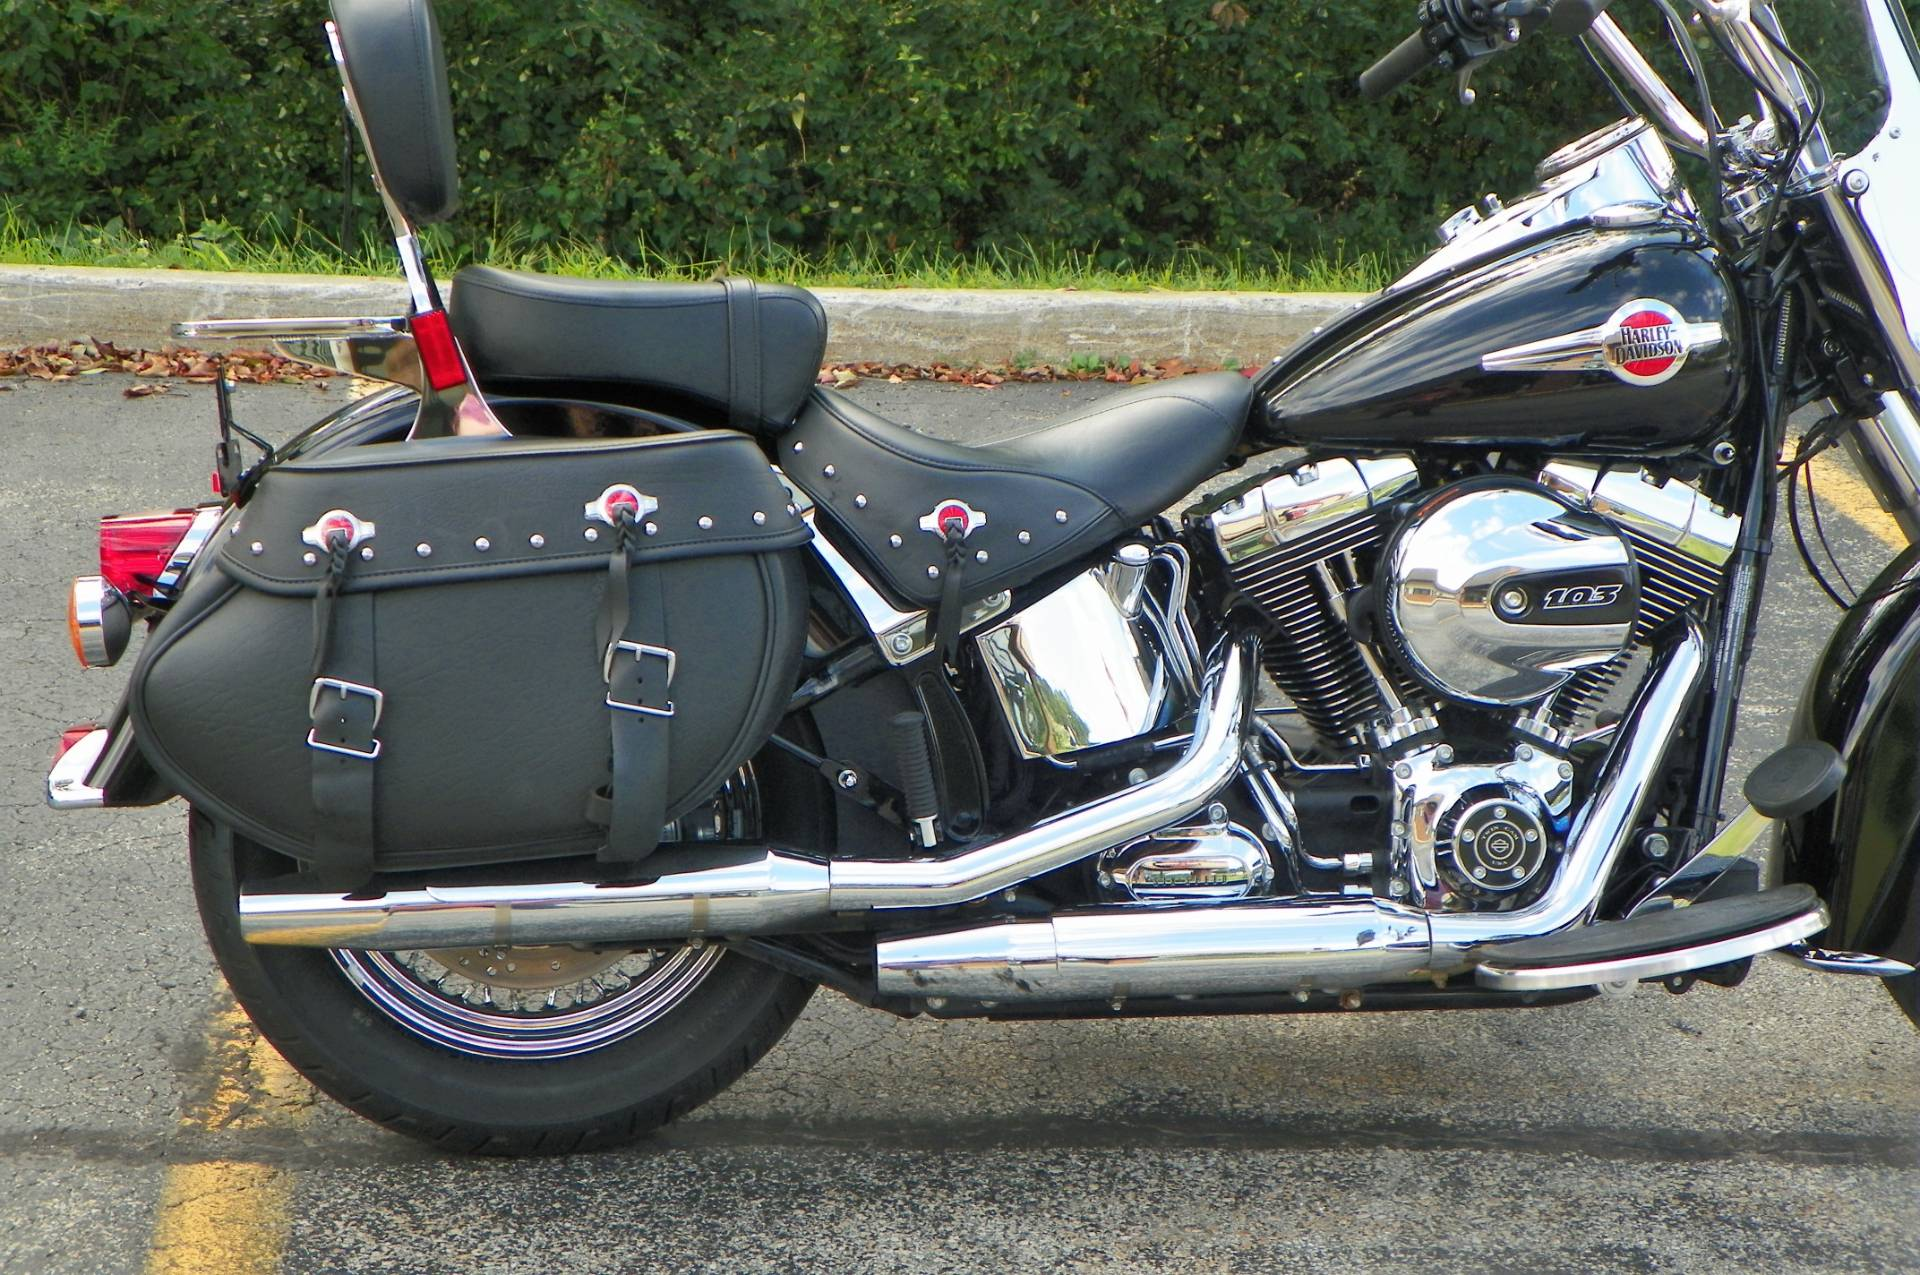 2016 Harley Davidson Heritage Softail Classic Motorcycles Johnstown In Pennsylvania